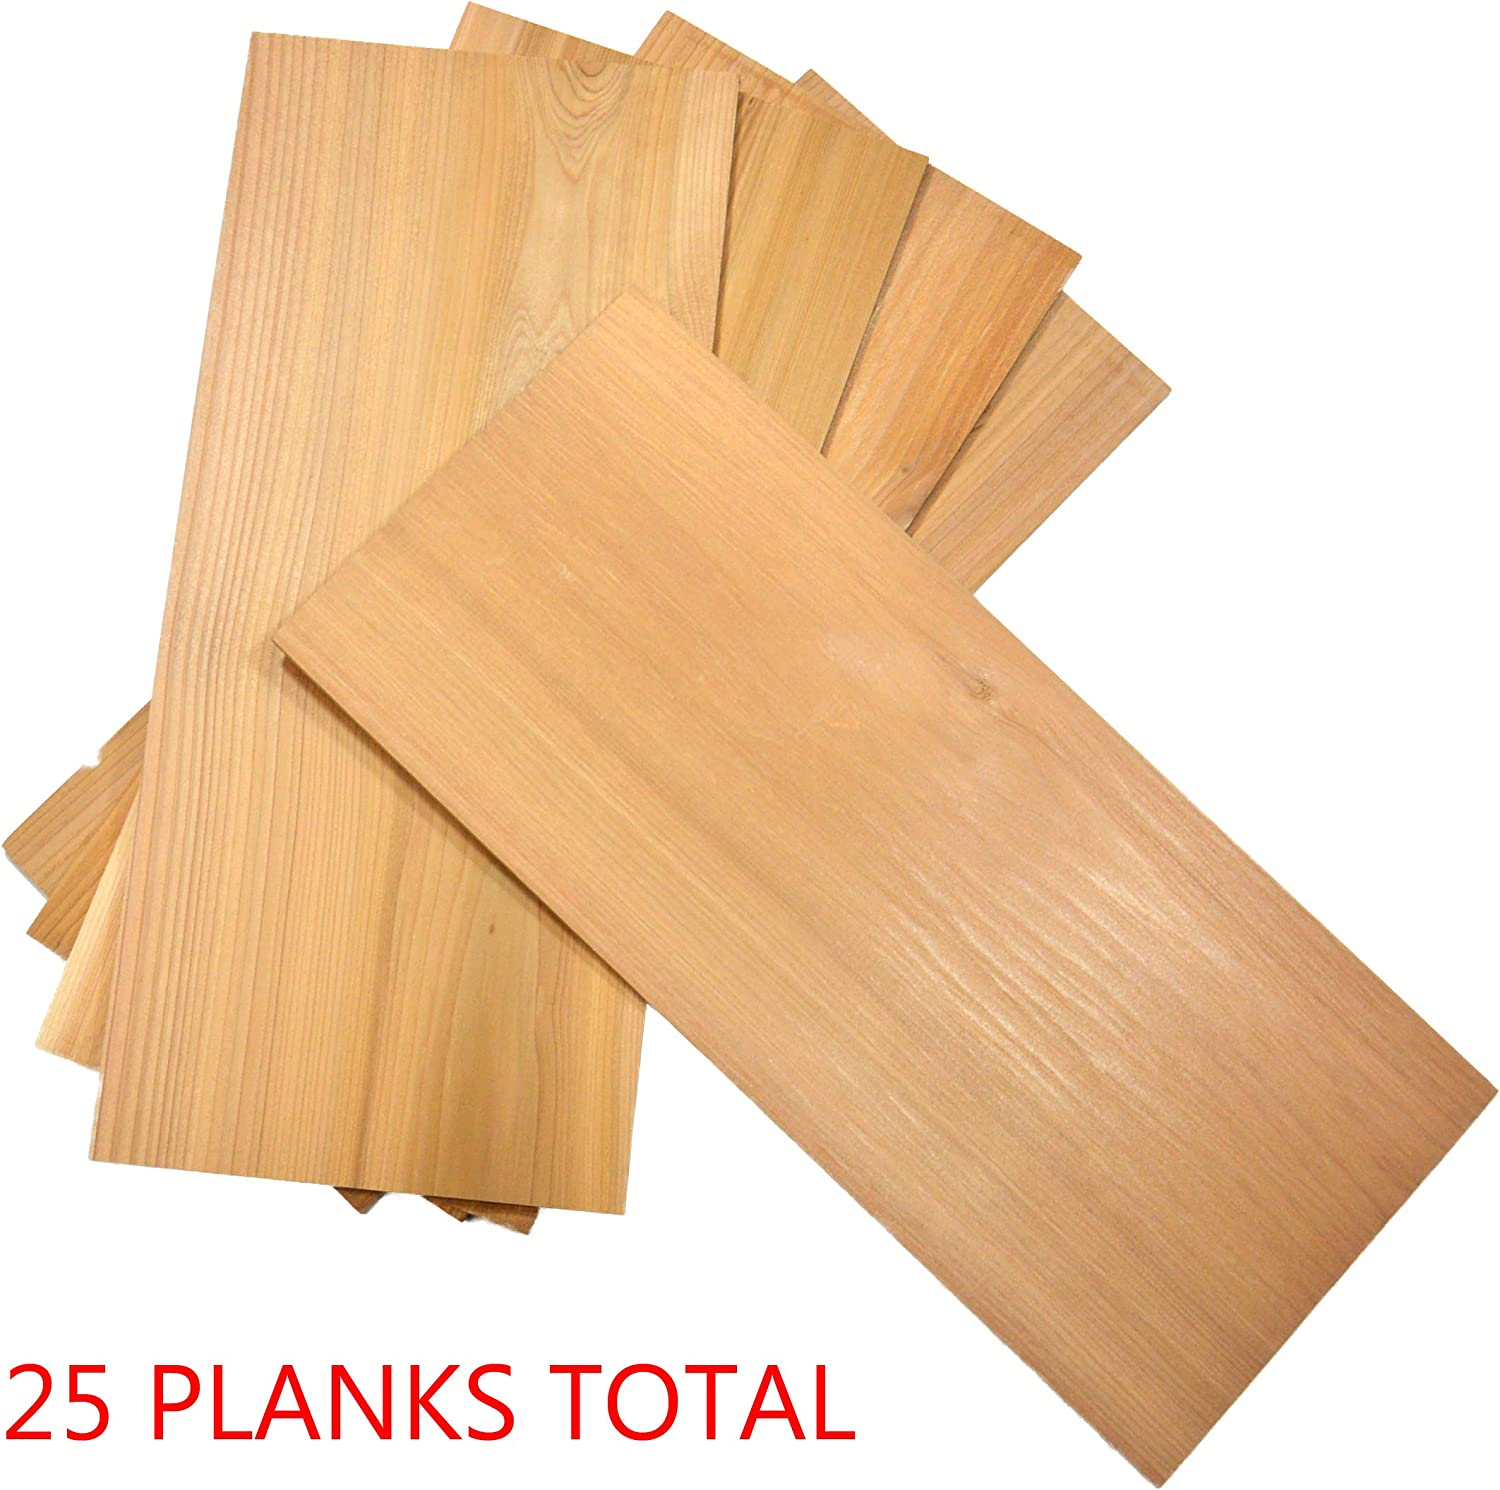 "TrueFire 50-Pack Cedar Grilling Planks 7.25 x 3.5/"" Perfect for The Experienced Plank Grilling Master. Bulk Pack"